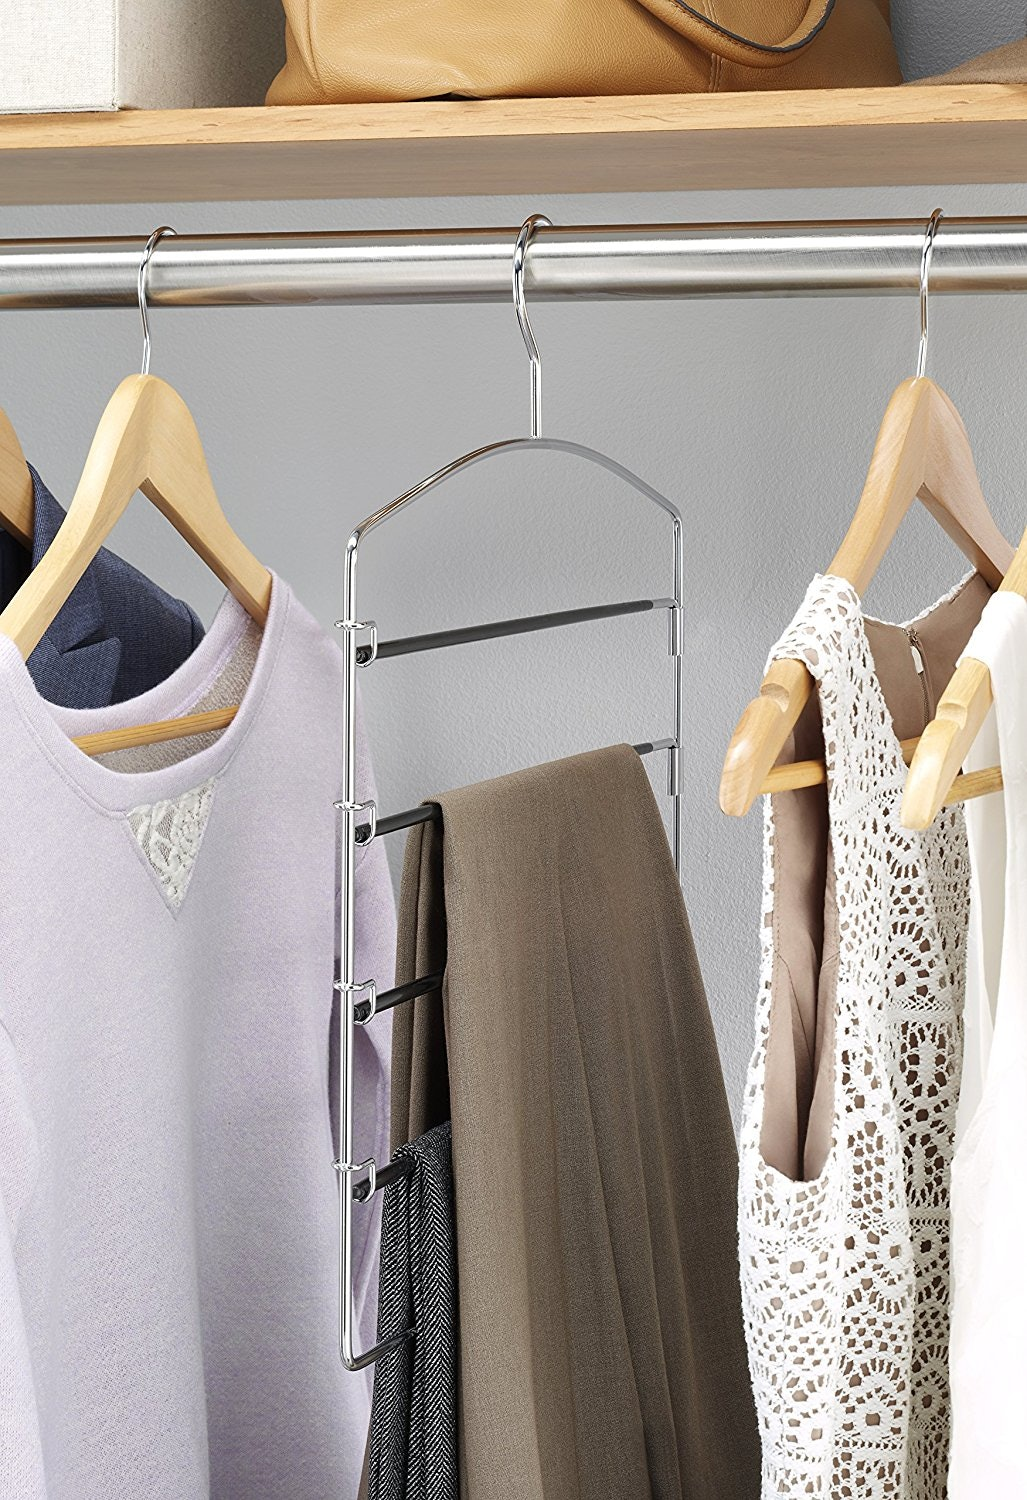 The 12 Best Closet Hangers